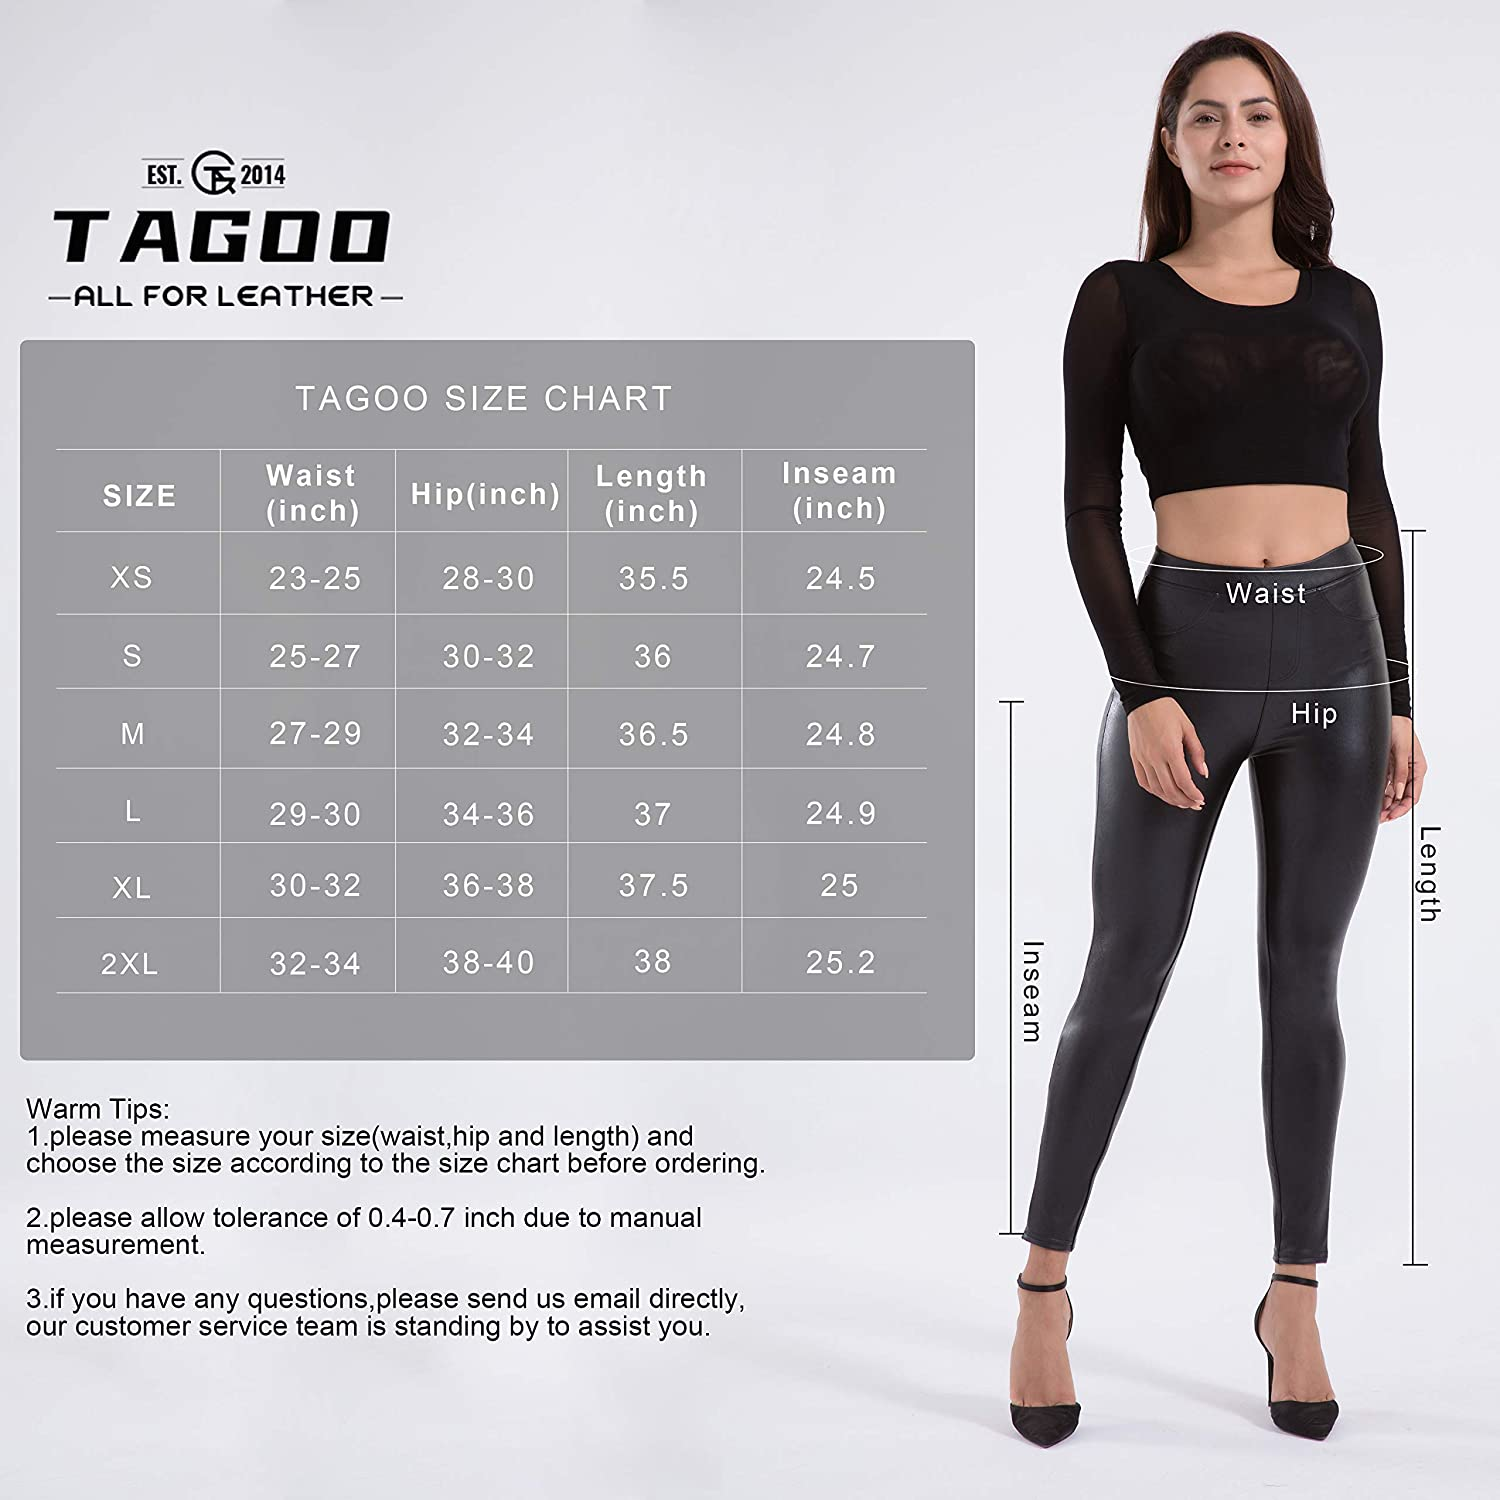 Tagoo Faux Leather Leggings for Women High Waisted Stretch Butt Lifting Pleather Pants